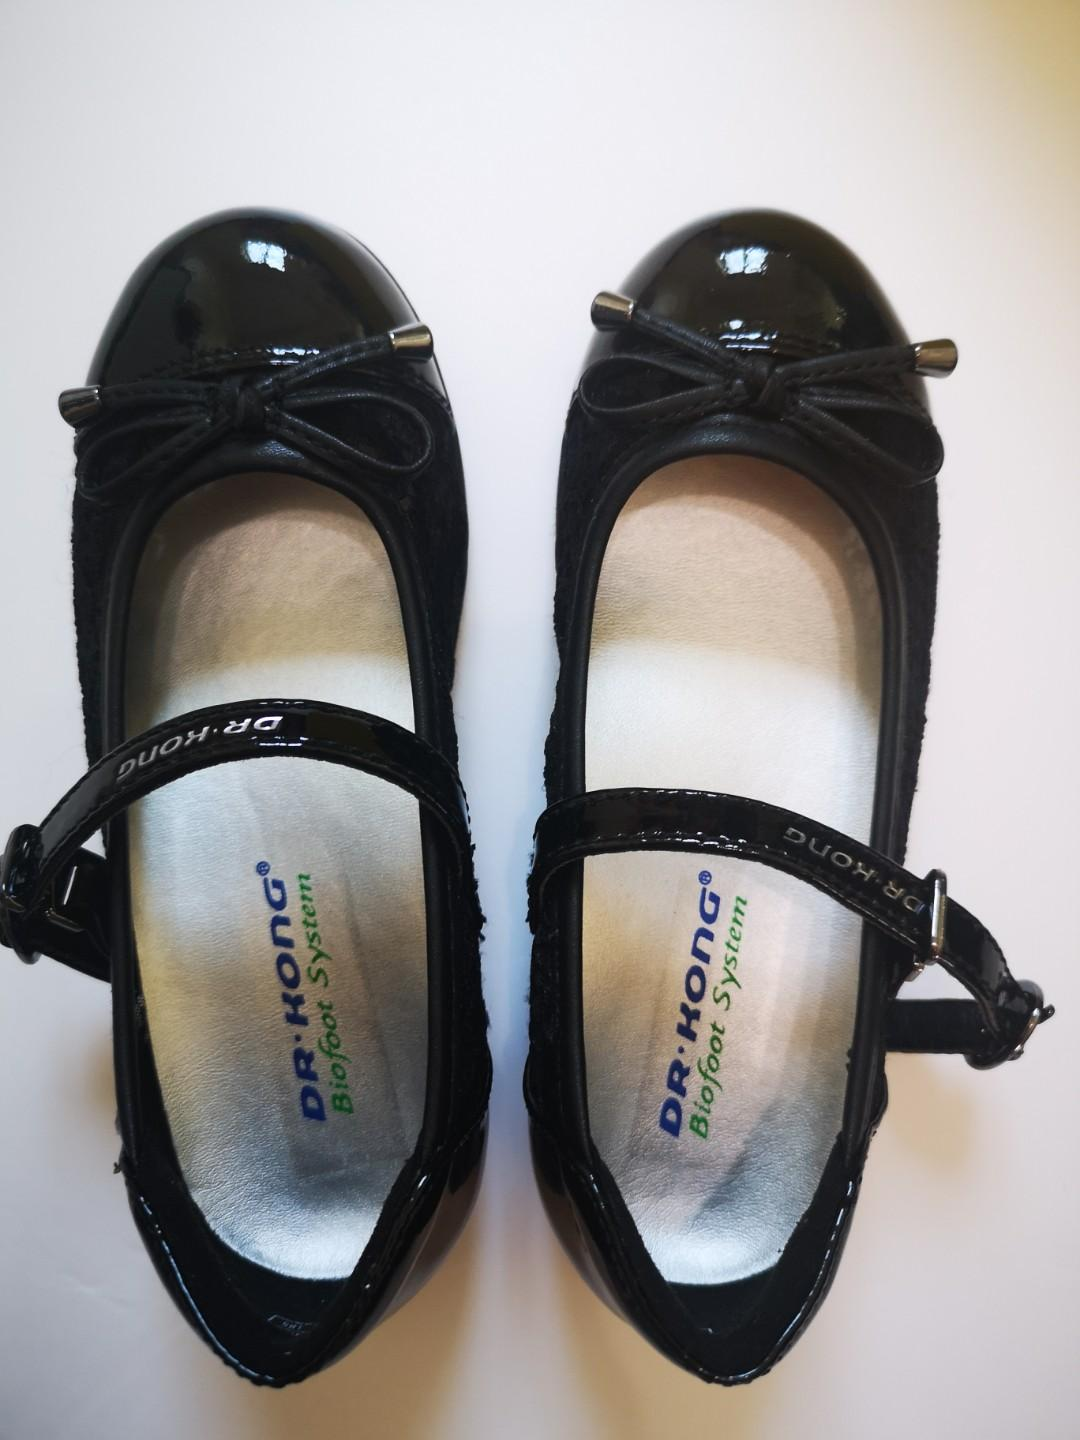 100% new Dr. Kong Girl's Black Patent Leather Shoes (EUR27)